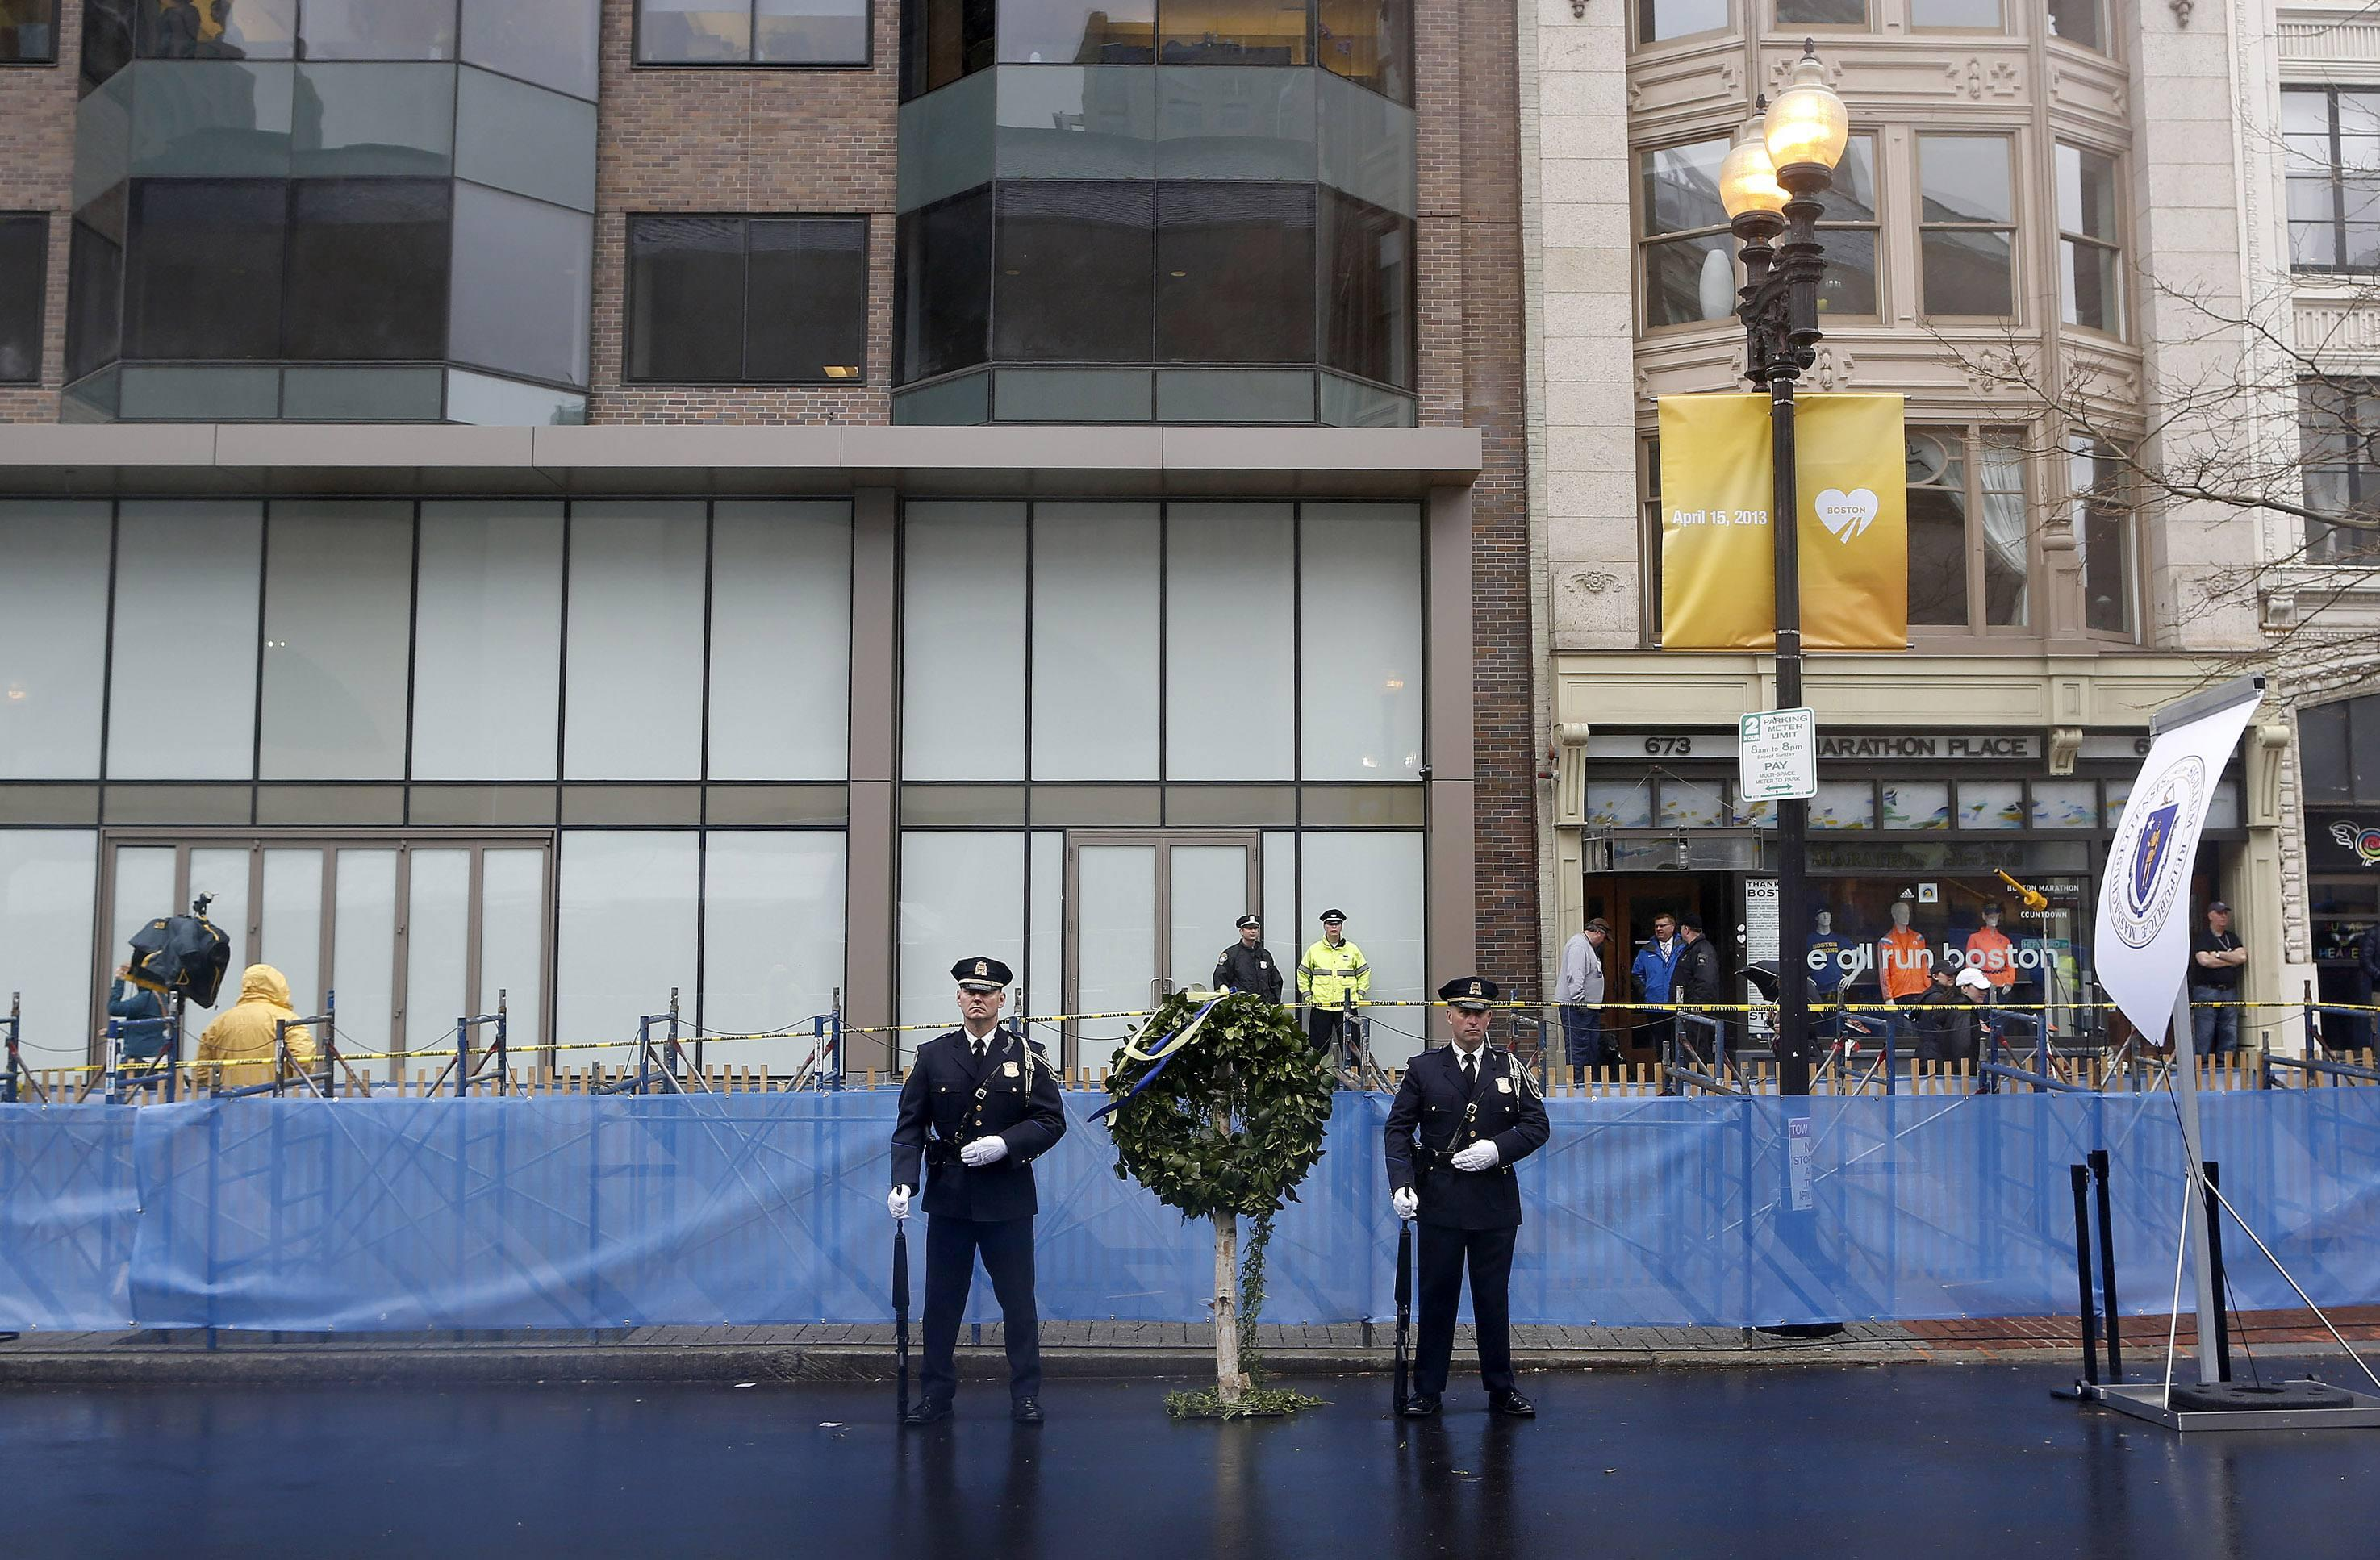 Boston Marathon Bombing Memorial - Wreath Wide